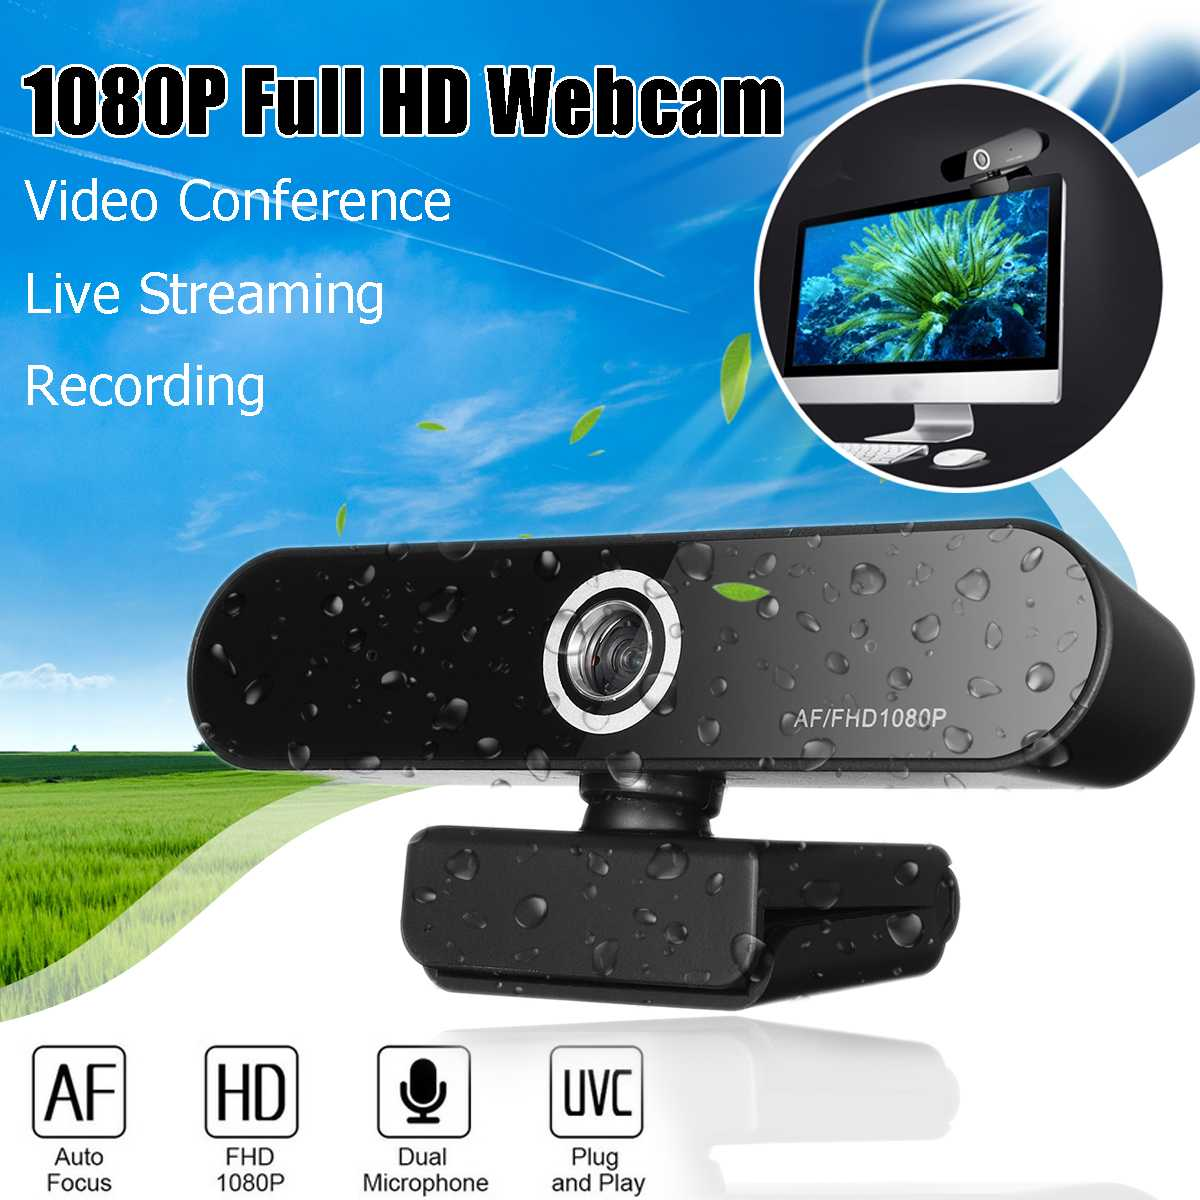 LEORY Webcam <font><b>1080P</b></font> HD AF USB Multifunctional Base Camera Dual Built-in Microphone 1920x1080p USB Plug <font><b>Web</b></font> <font><b>Cam</b></font> Widescreen Video image